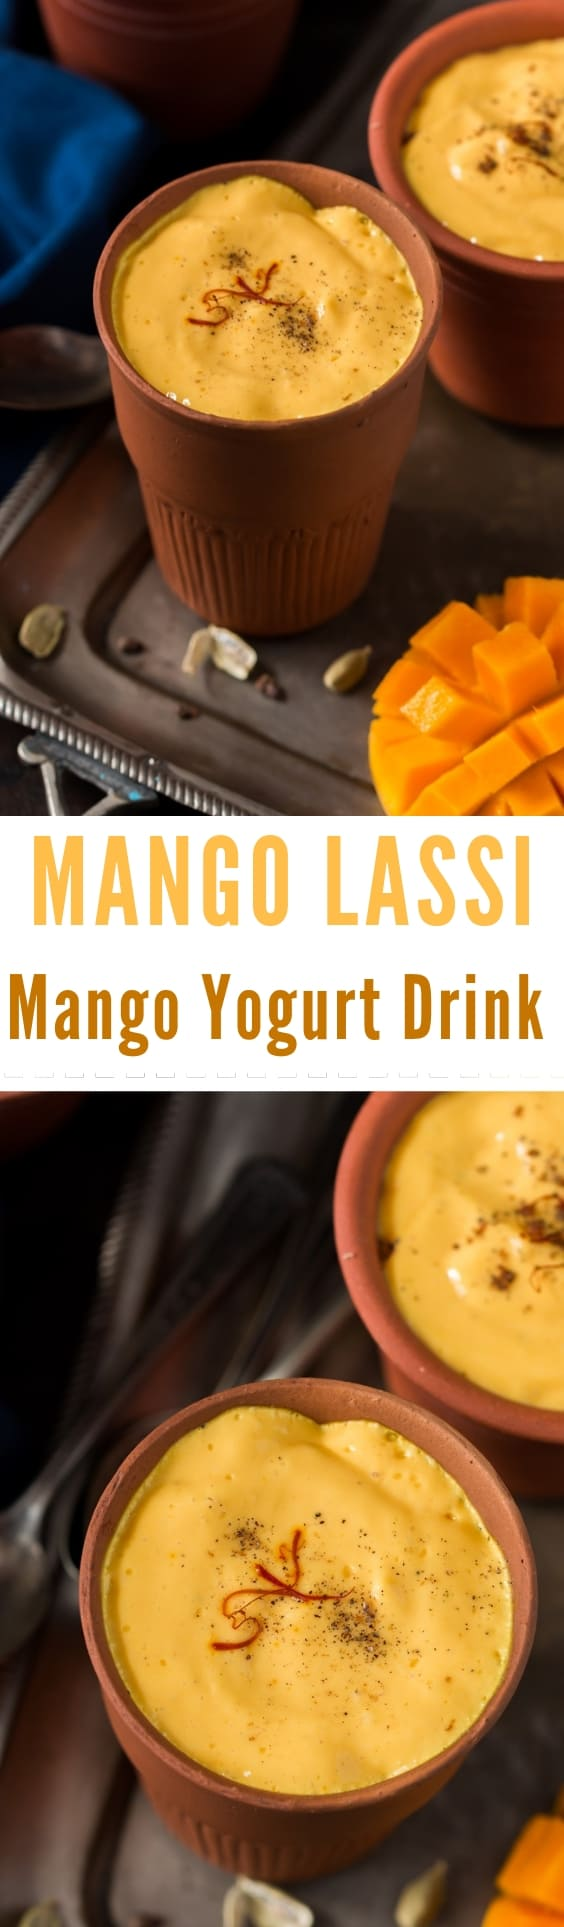 Mango lassi served in earthen pots with text overlay